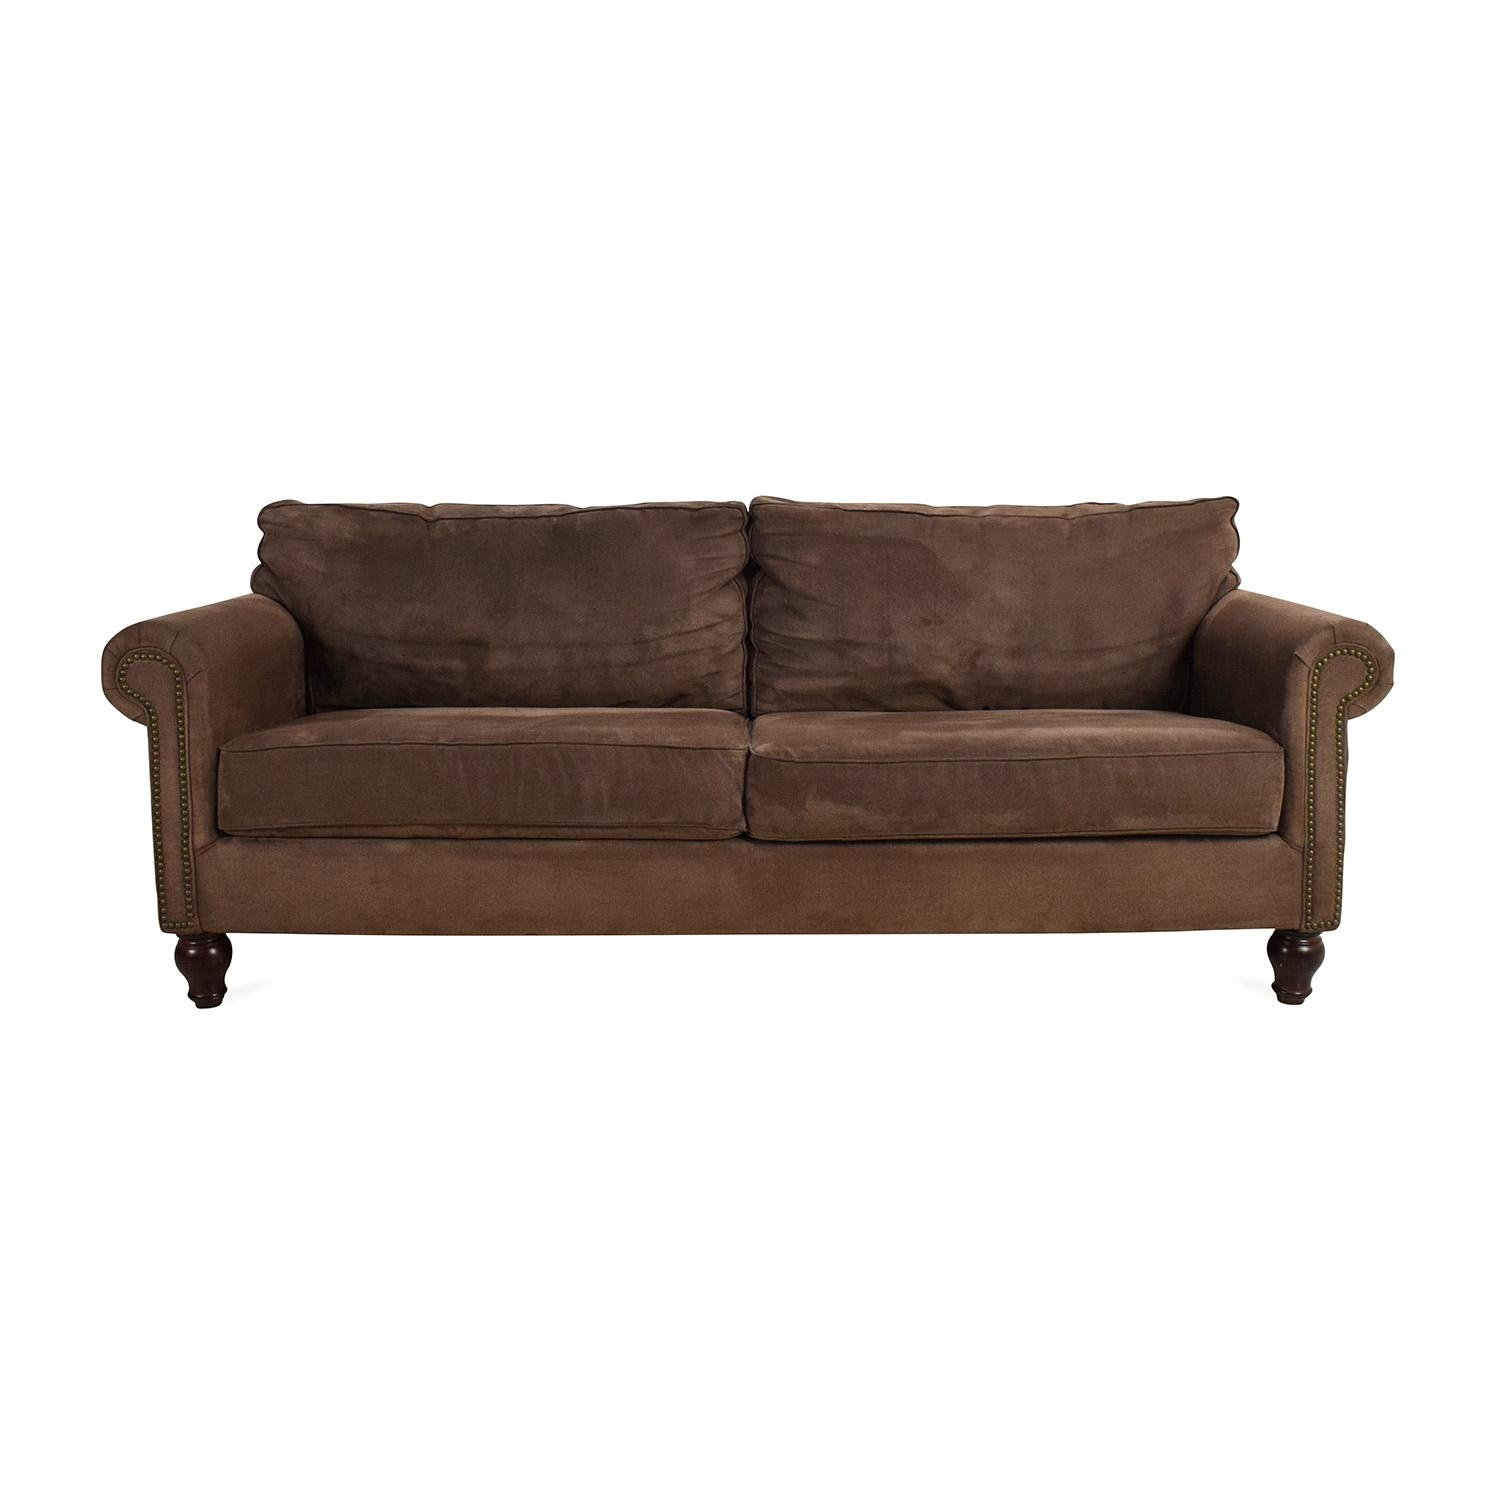 67% Off – Pier 1 Imports Pier 1 Alton Ecru Rolled Arm Sofa / Sofas Pertaining To Pier 1 Sofas (Photo 15 of 20)